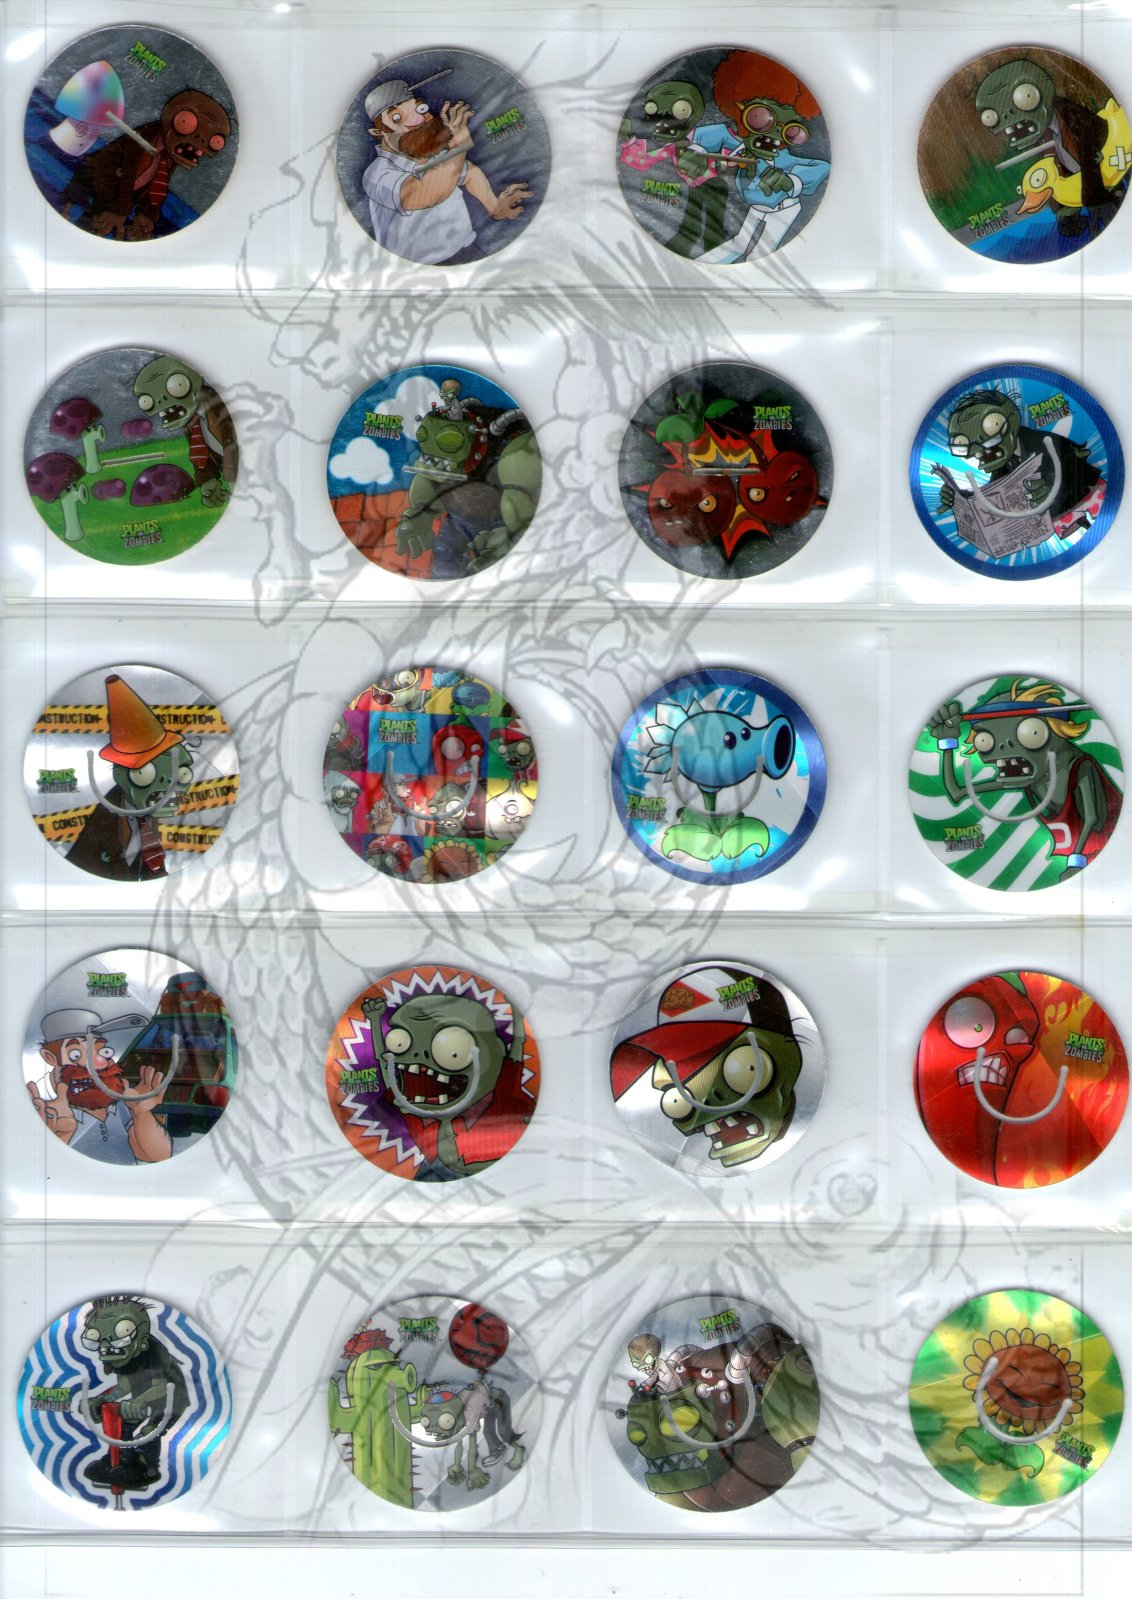 Tazos Plantas Vs Zombies de SABRITAS 2s7guag